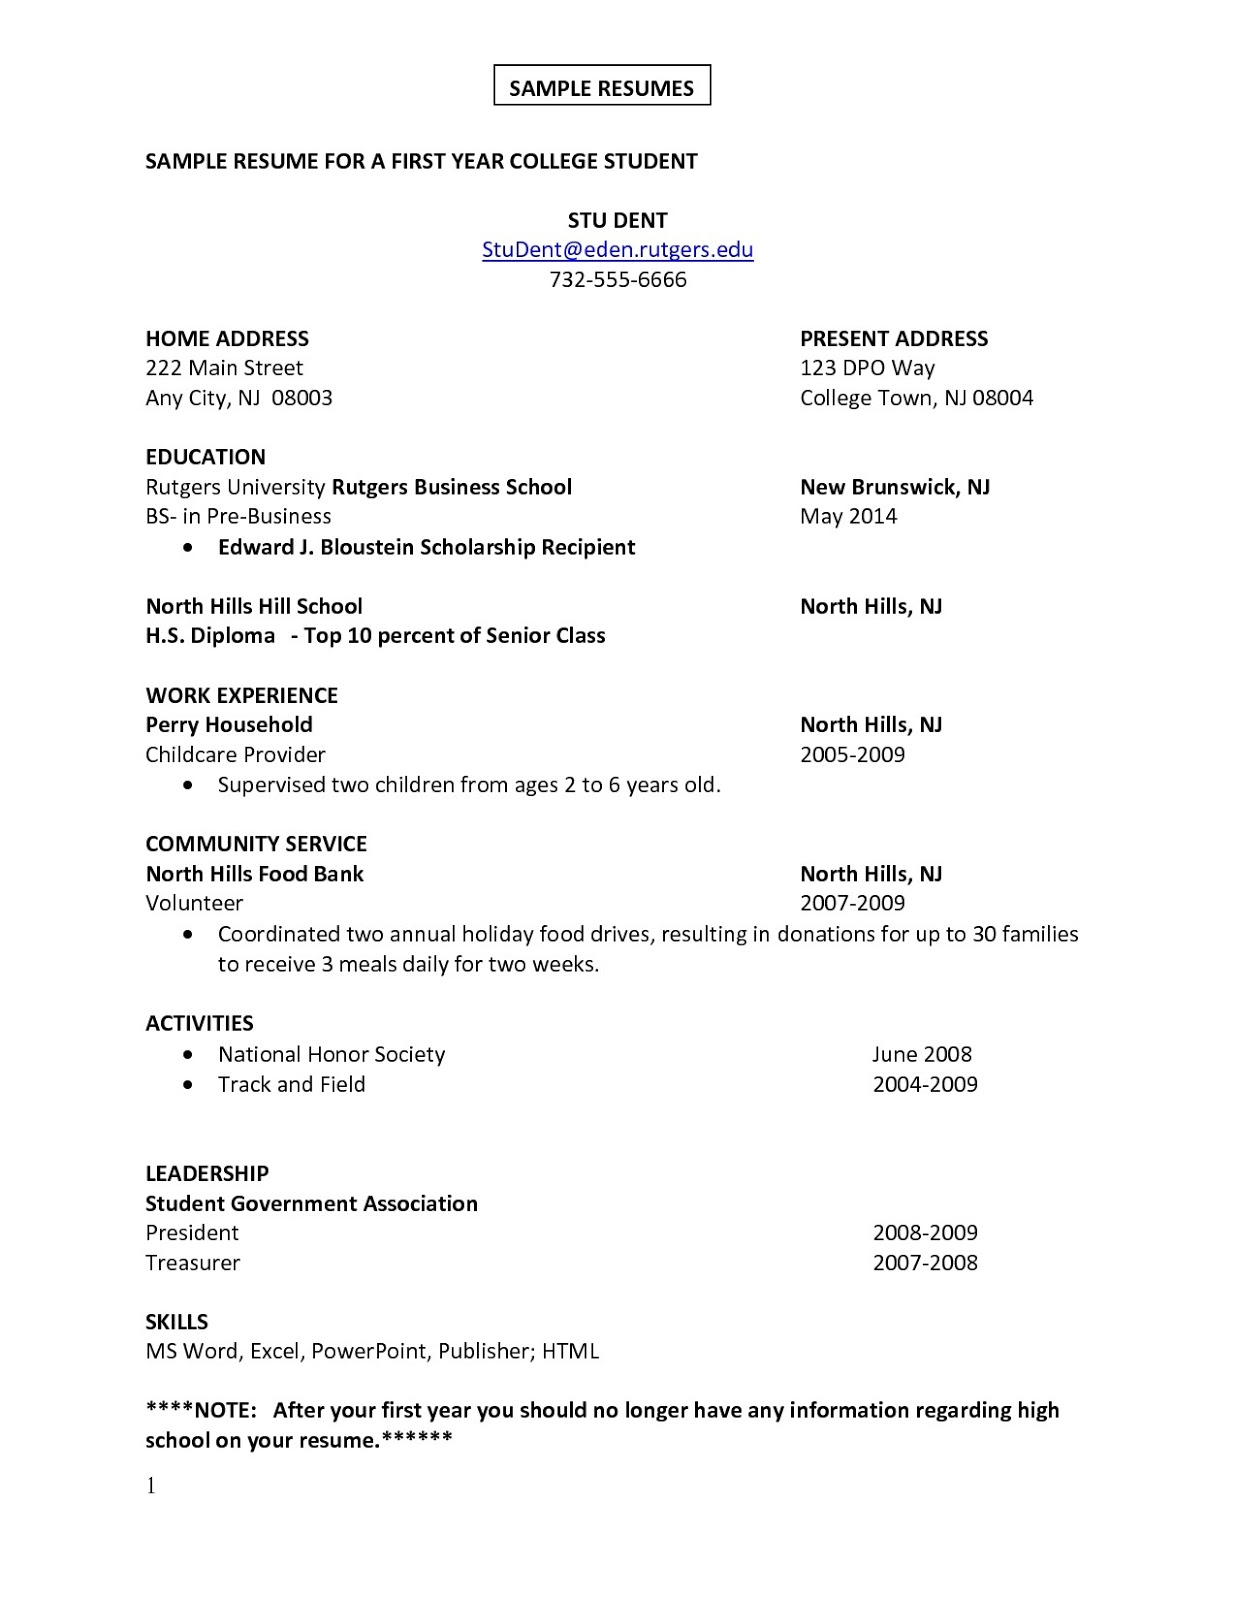 resume sample malaysia - Example Of Resume For Applying Job